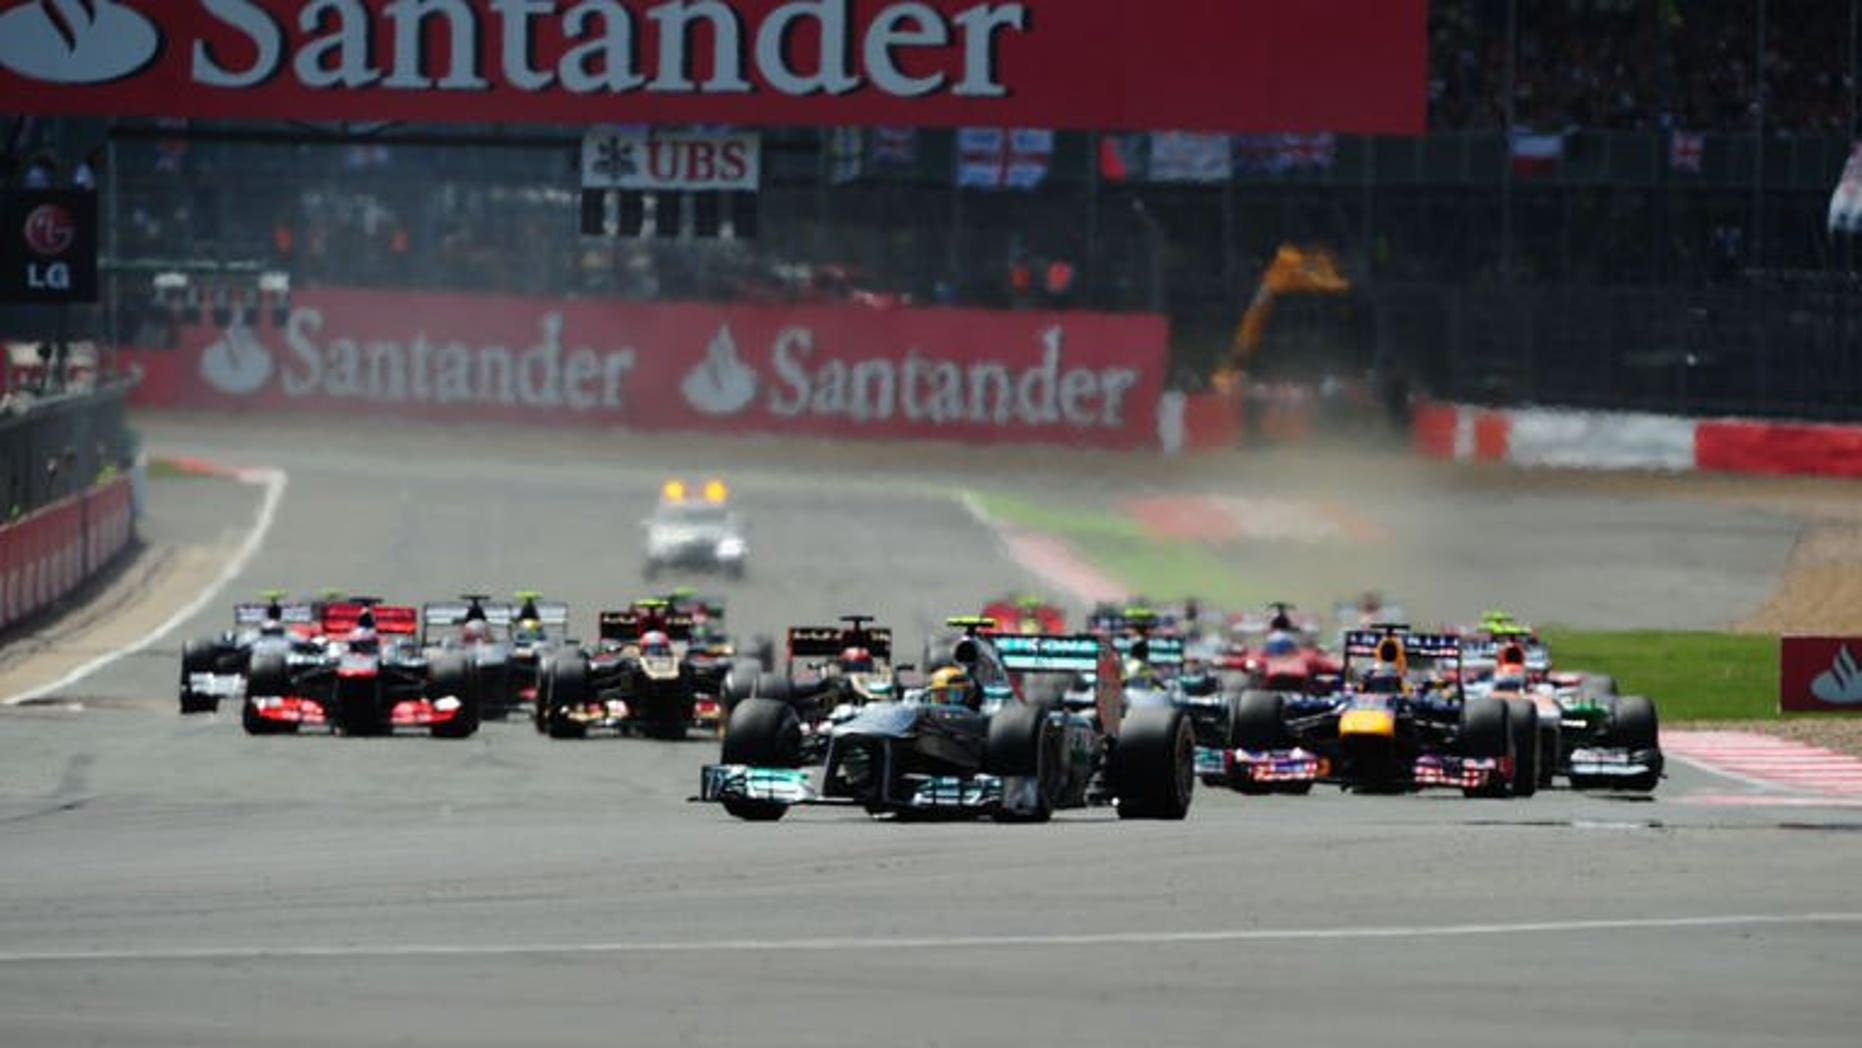 Mercedes' British driver Lewis Hamilton leads after the start at the Silverstone circuit in Silverstone on June 30, 2013 during the British Formula One Grand Prix. Hamilton's hopes of his second win in the British Grand Prix looked to have been fatally damaged as his left rear tyre deflated in spectacular fashion.